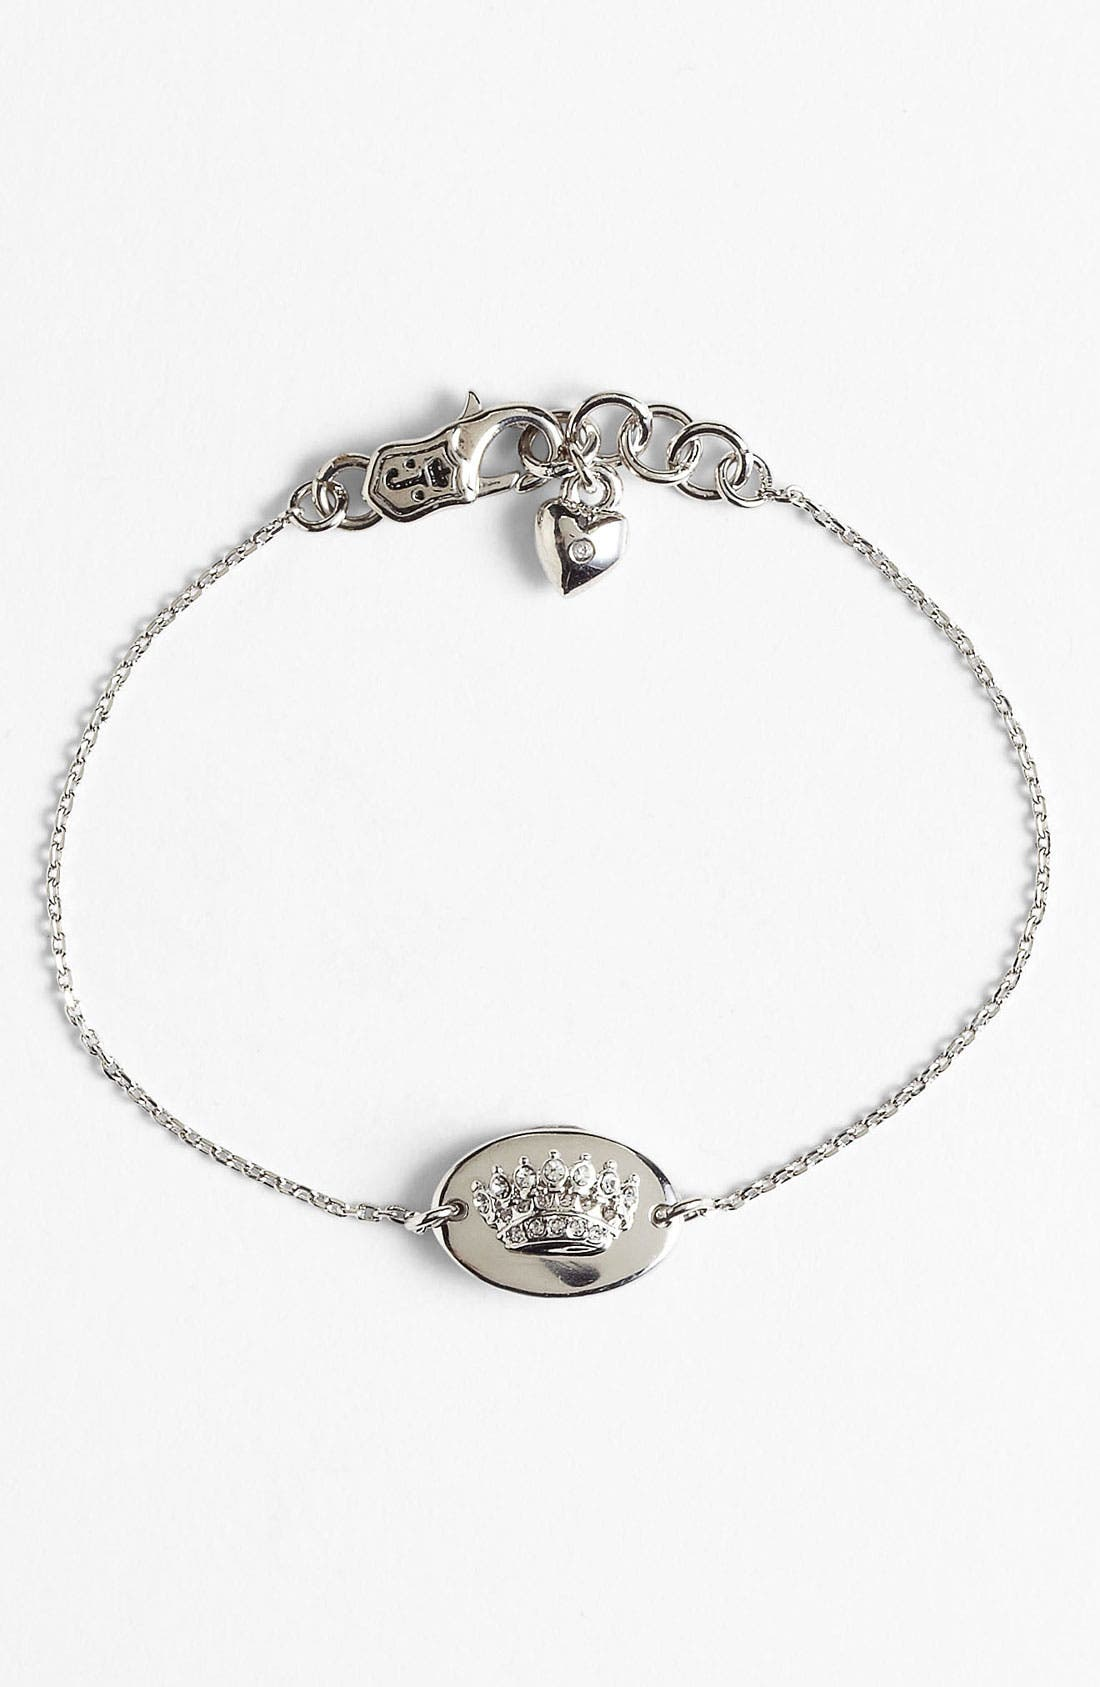 Main Image - Juicy Couture 'Holiday Icons' Link Bracelet